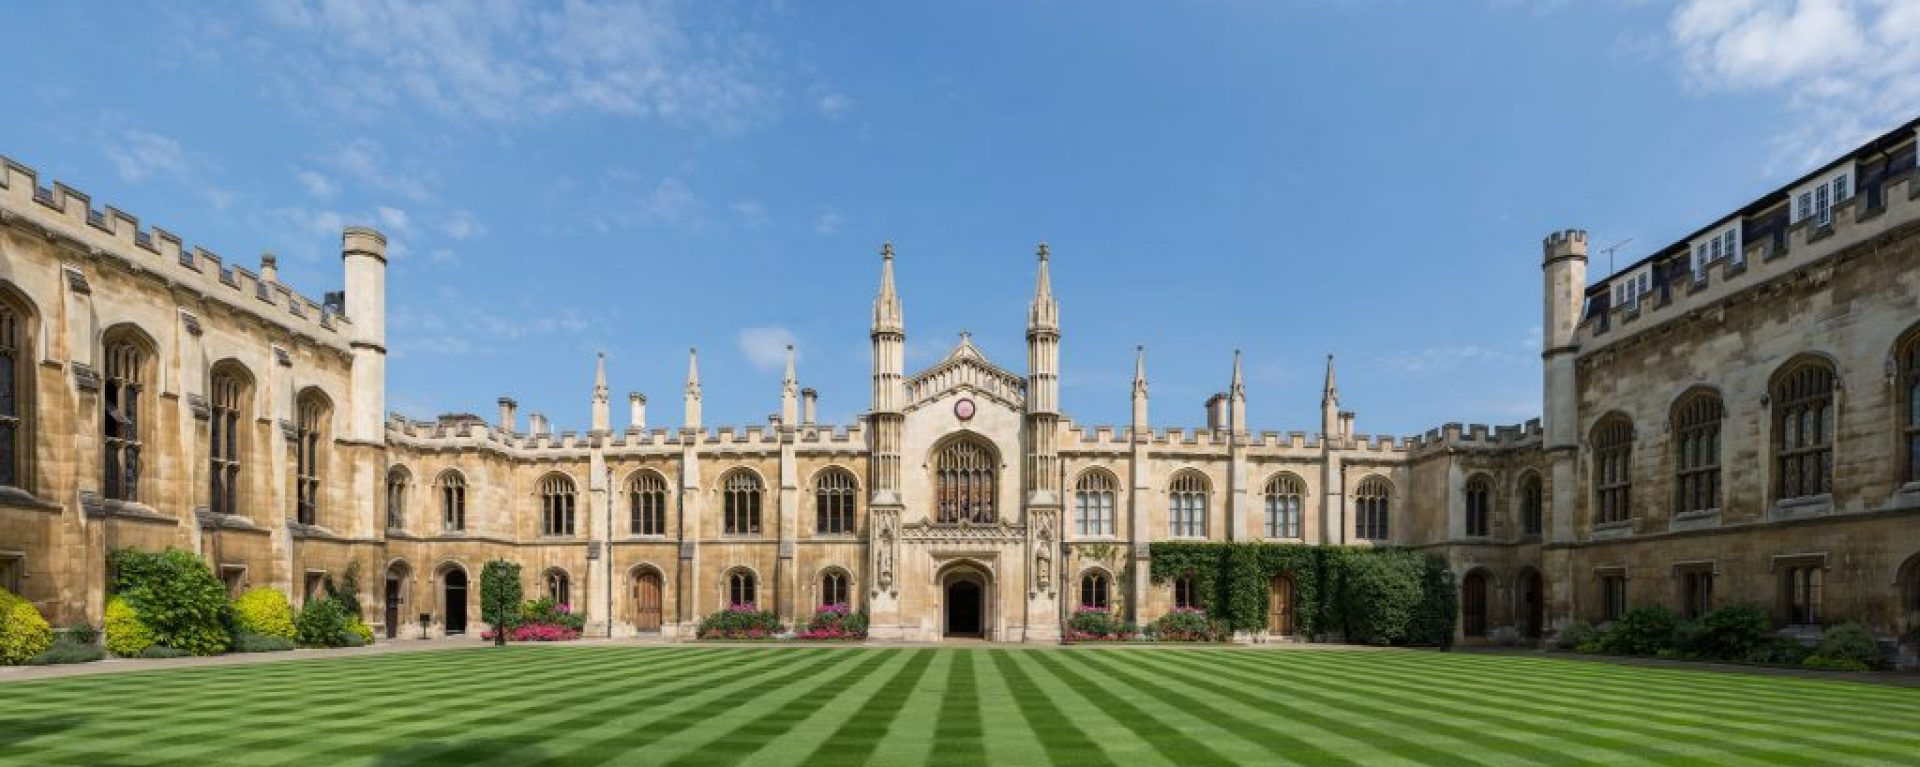 Corpus_Christi_College_New_Court,_Cambridge,_UK_-_Diliff